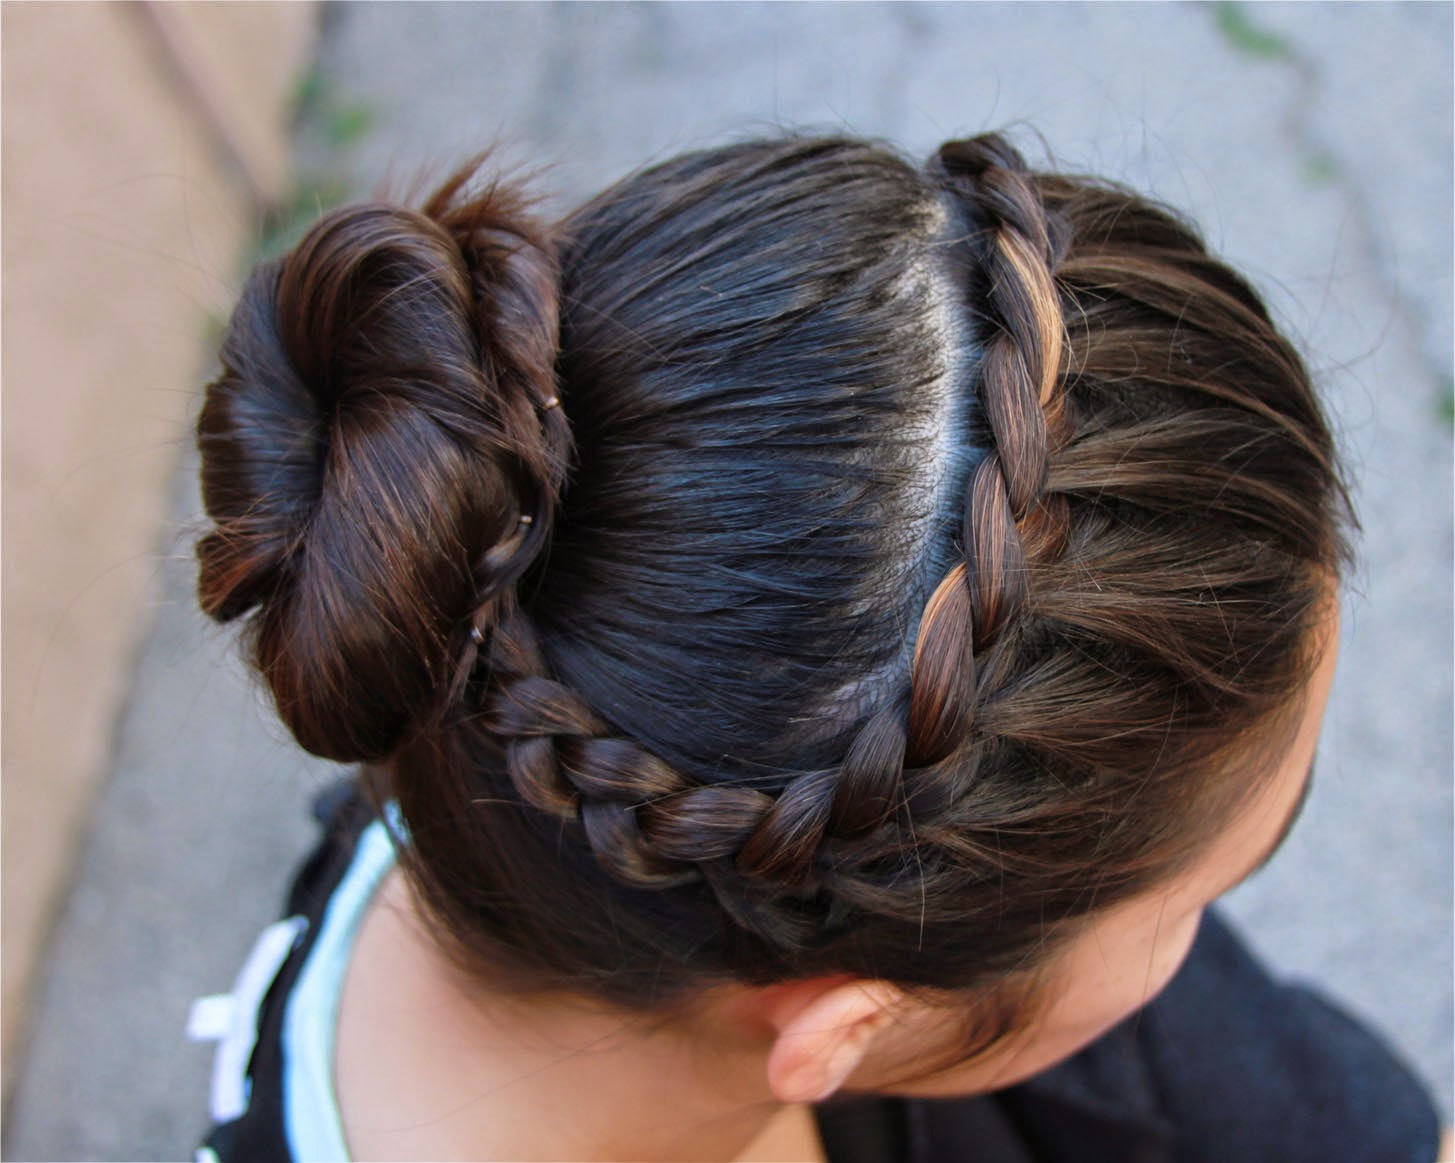 Easy Buns And Braided Hairstyles Easy Buns And Braided Hairstyles Unveiled  Fashion How To Make Two